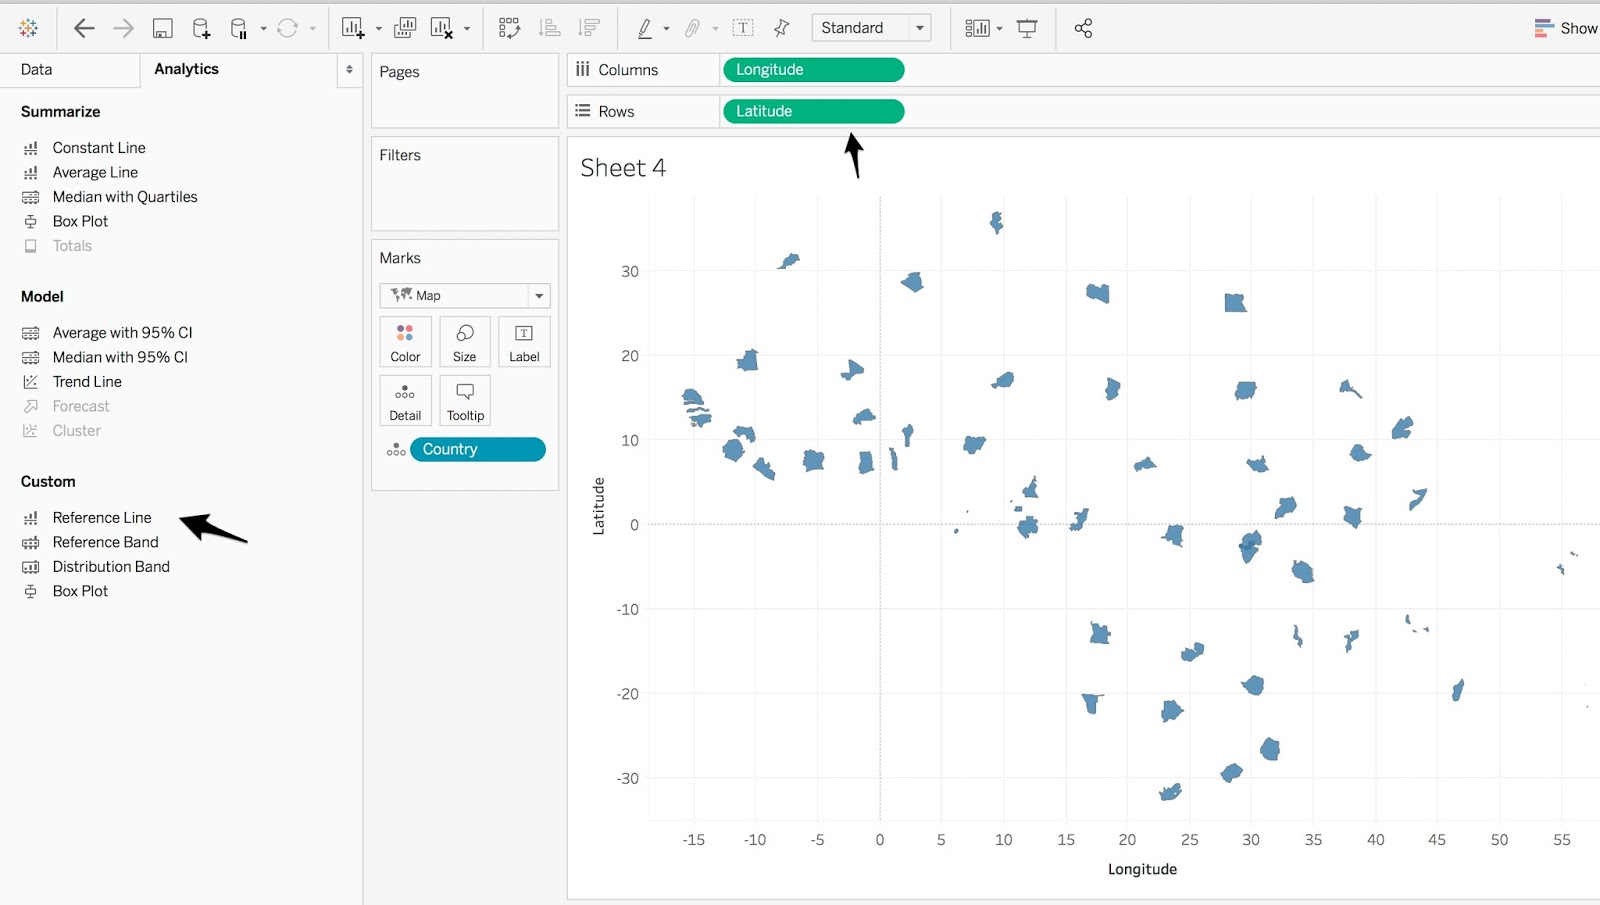 jeffrey shaffer suggested that i use polygon shapes instead of the native mapping in tableau